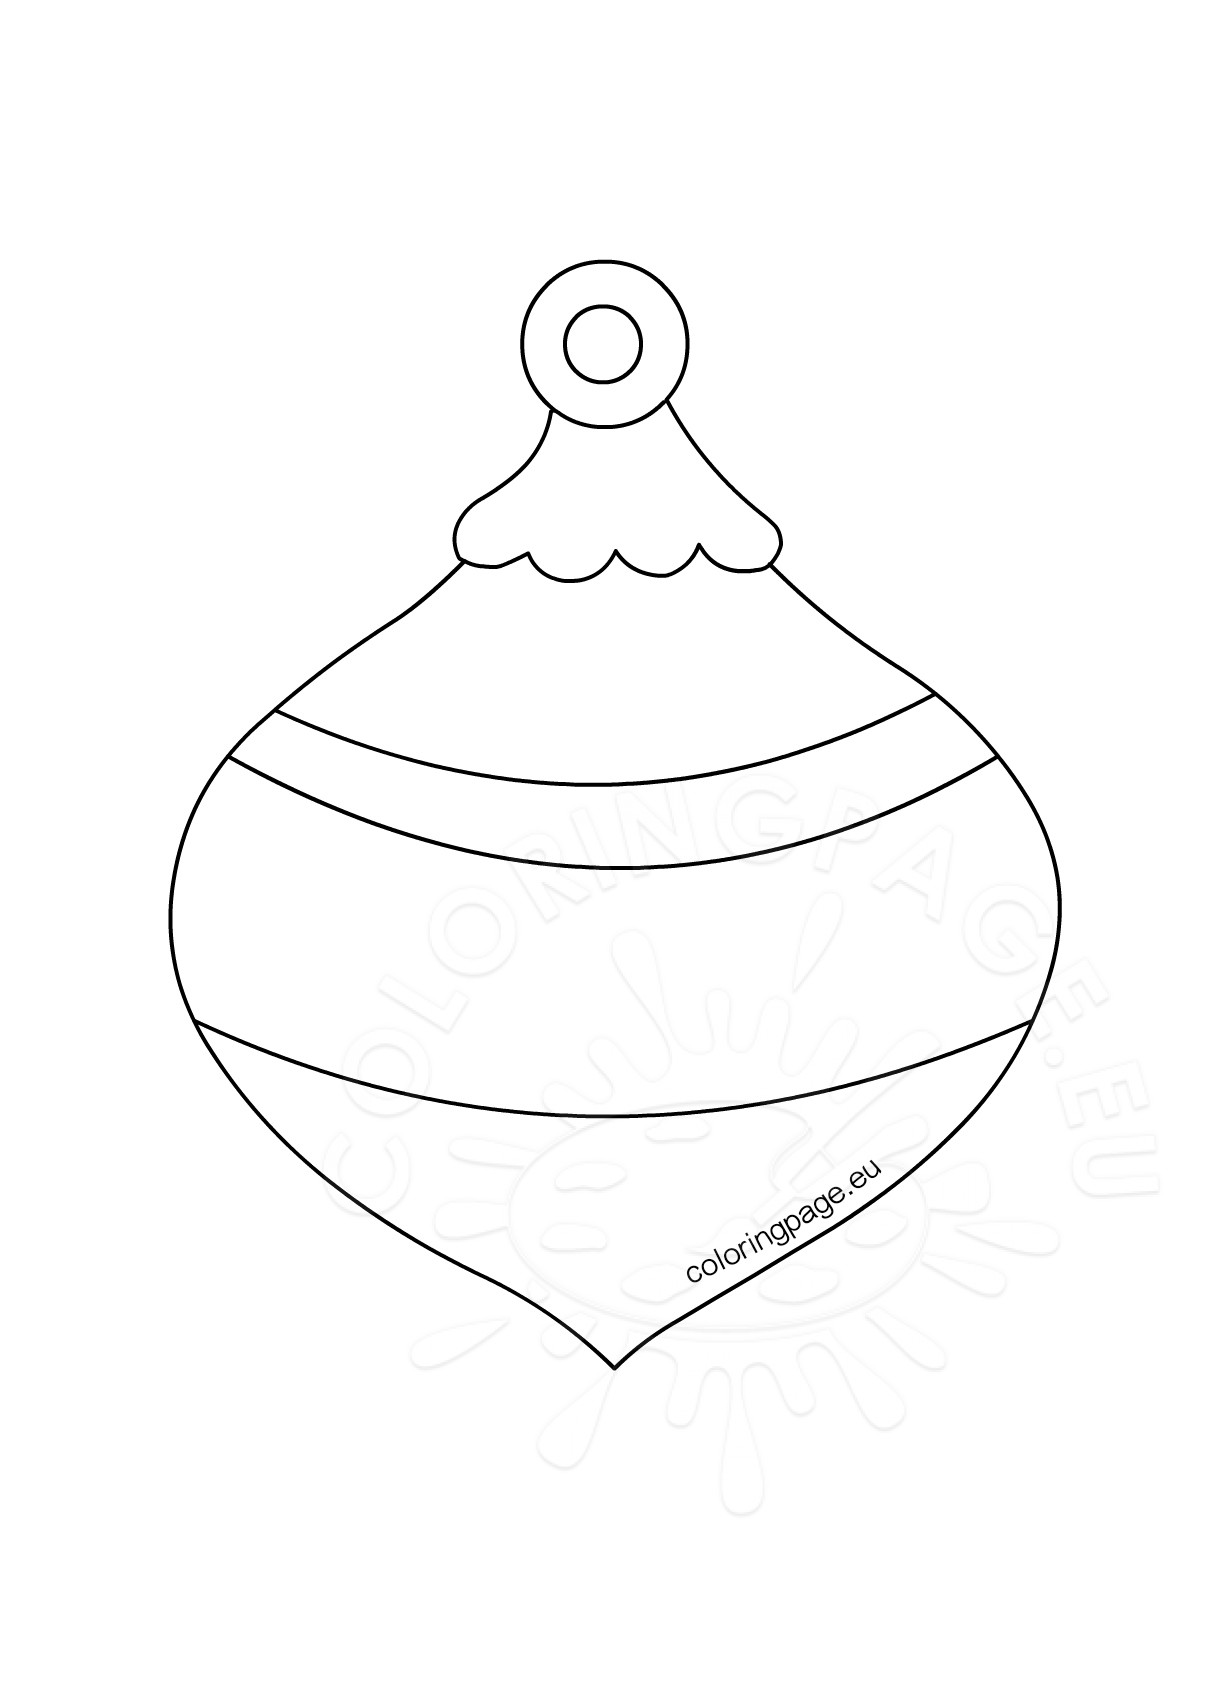 Honeycomb Christmas Ornament Template Coloring Page